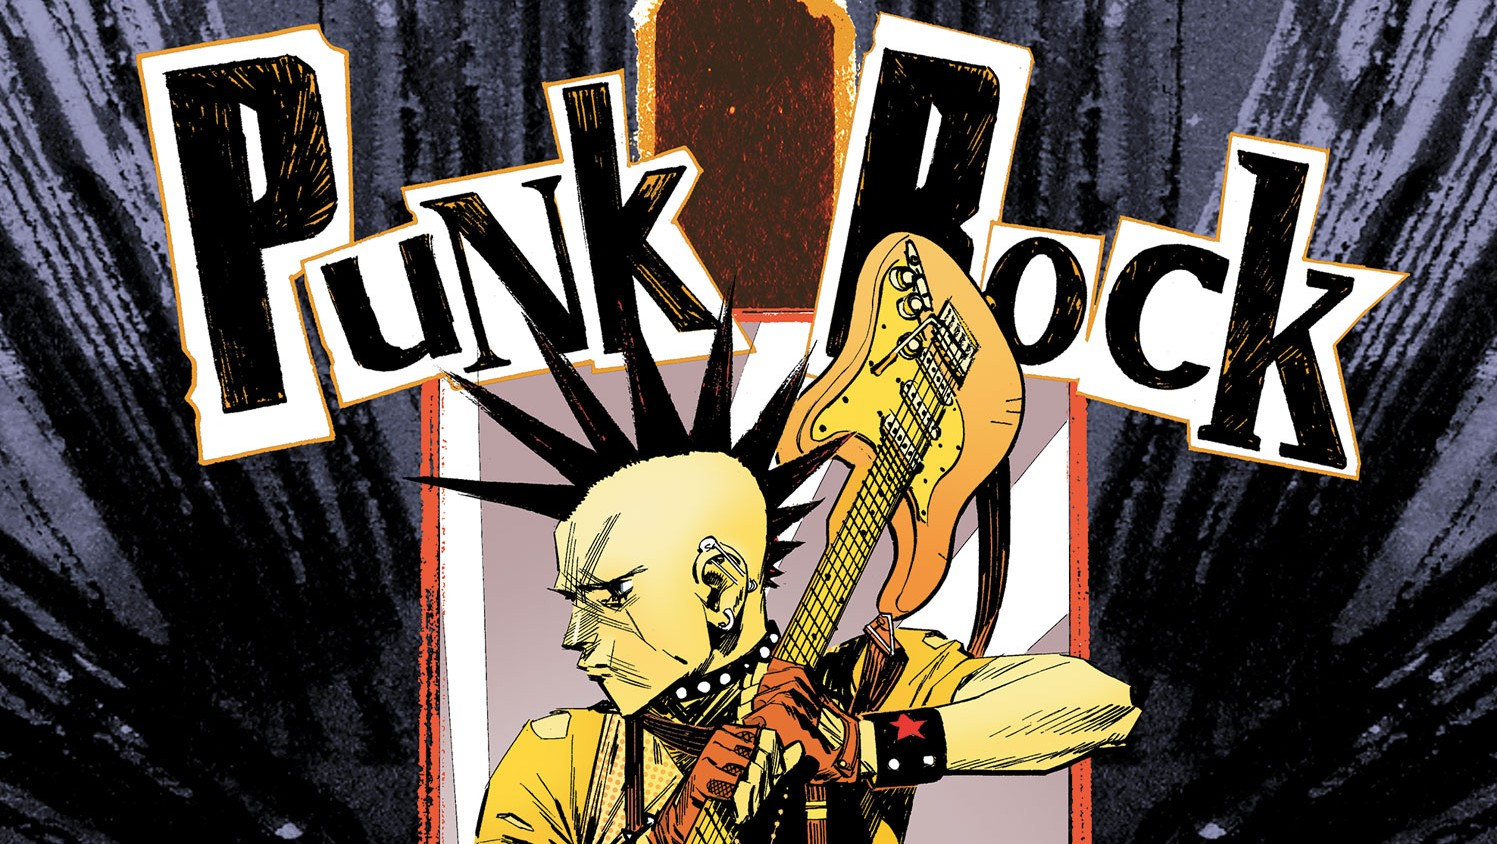 Top 100 Punk Bands as voted by ... - Rate Your Music